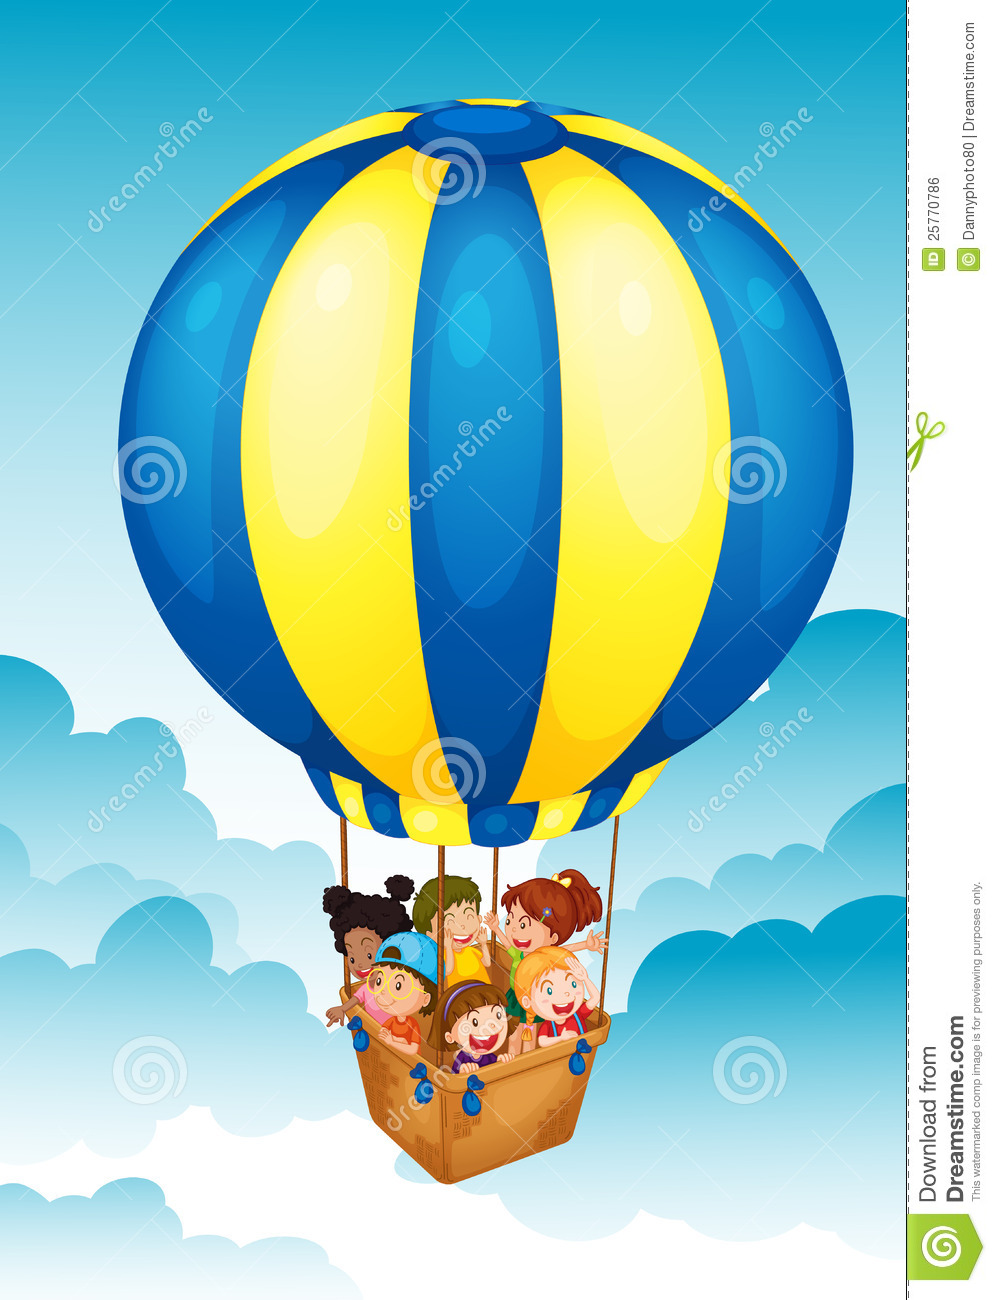 Kids In Hot Air Balloon Royalty Free Stock Image - Image ...